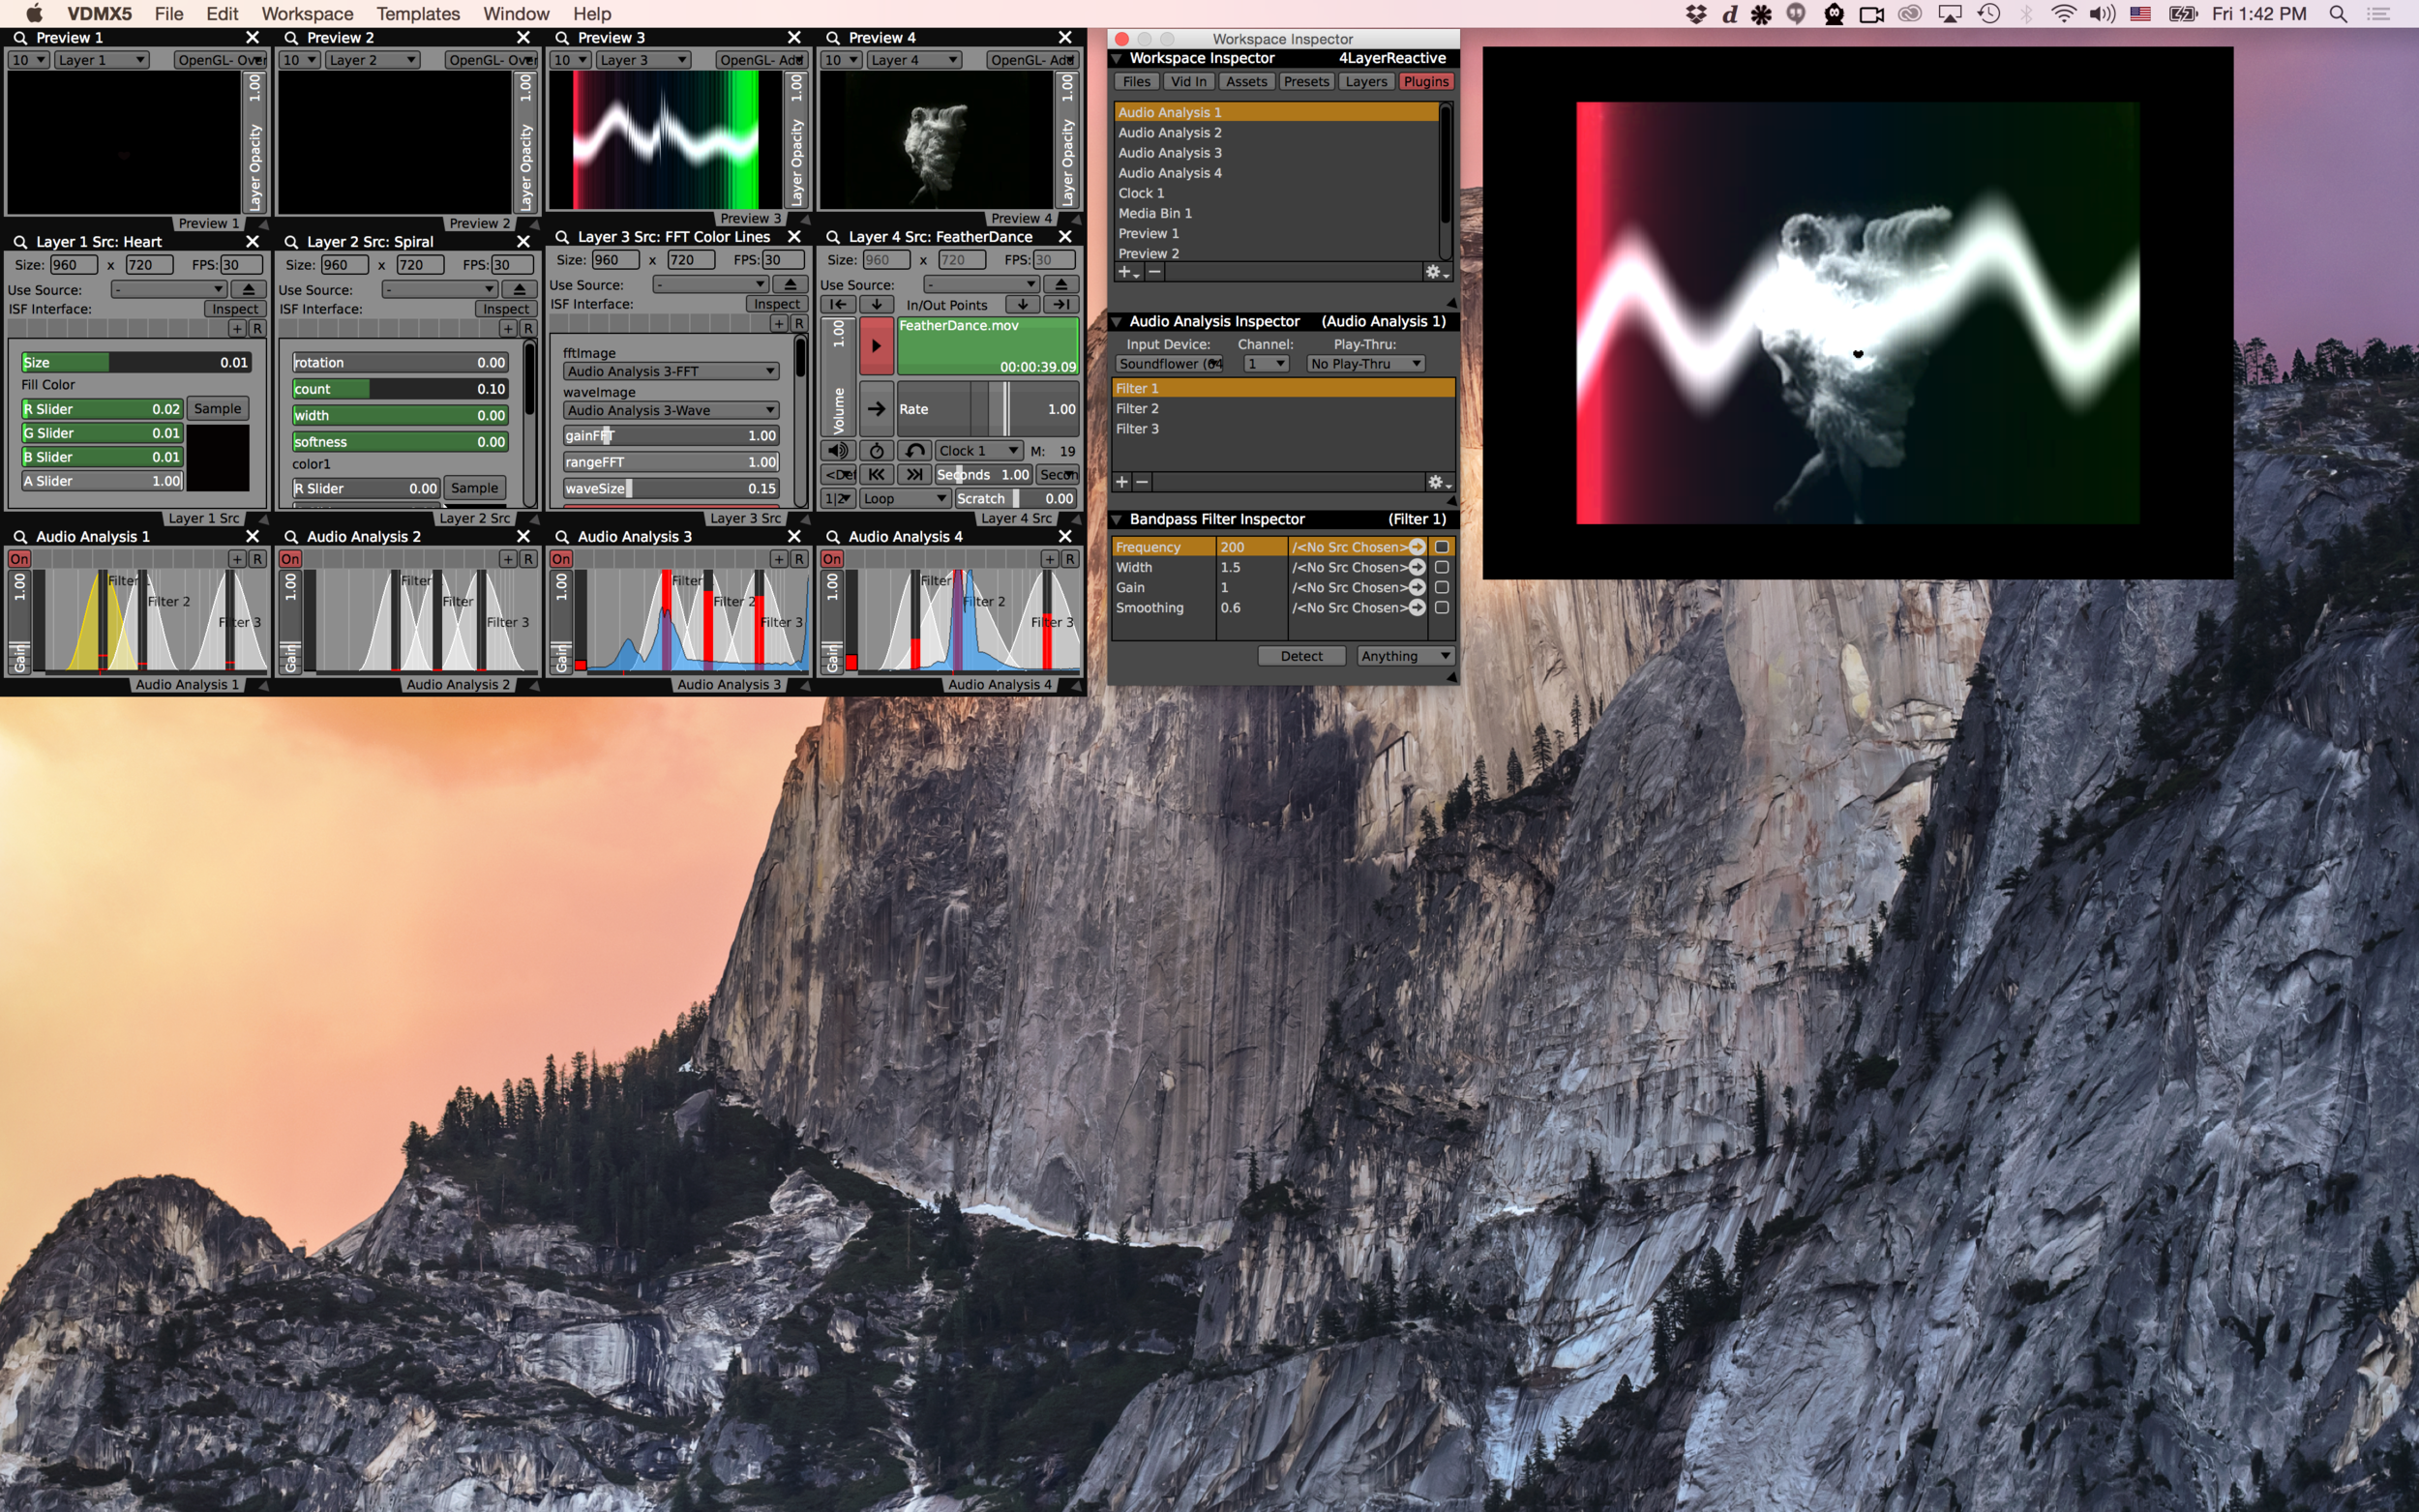 Analyzing multi-track audio from Live in VDMX using